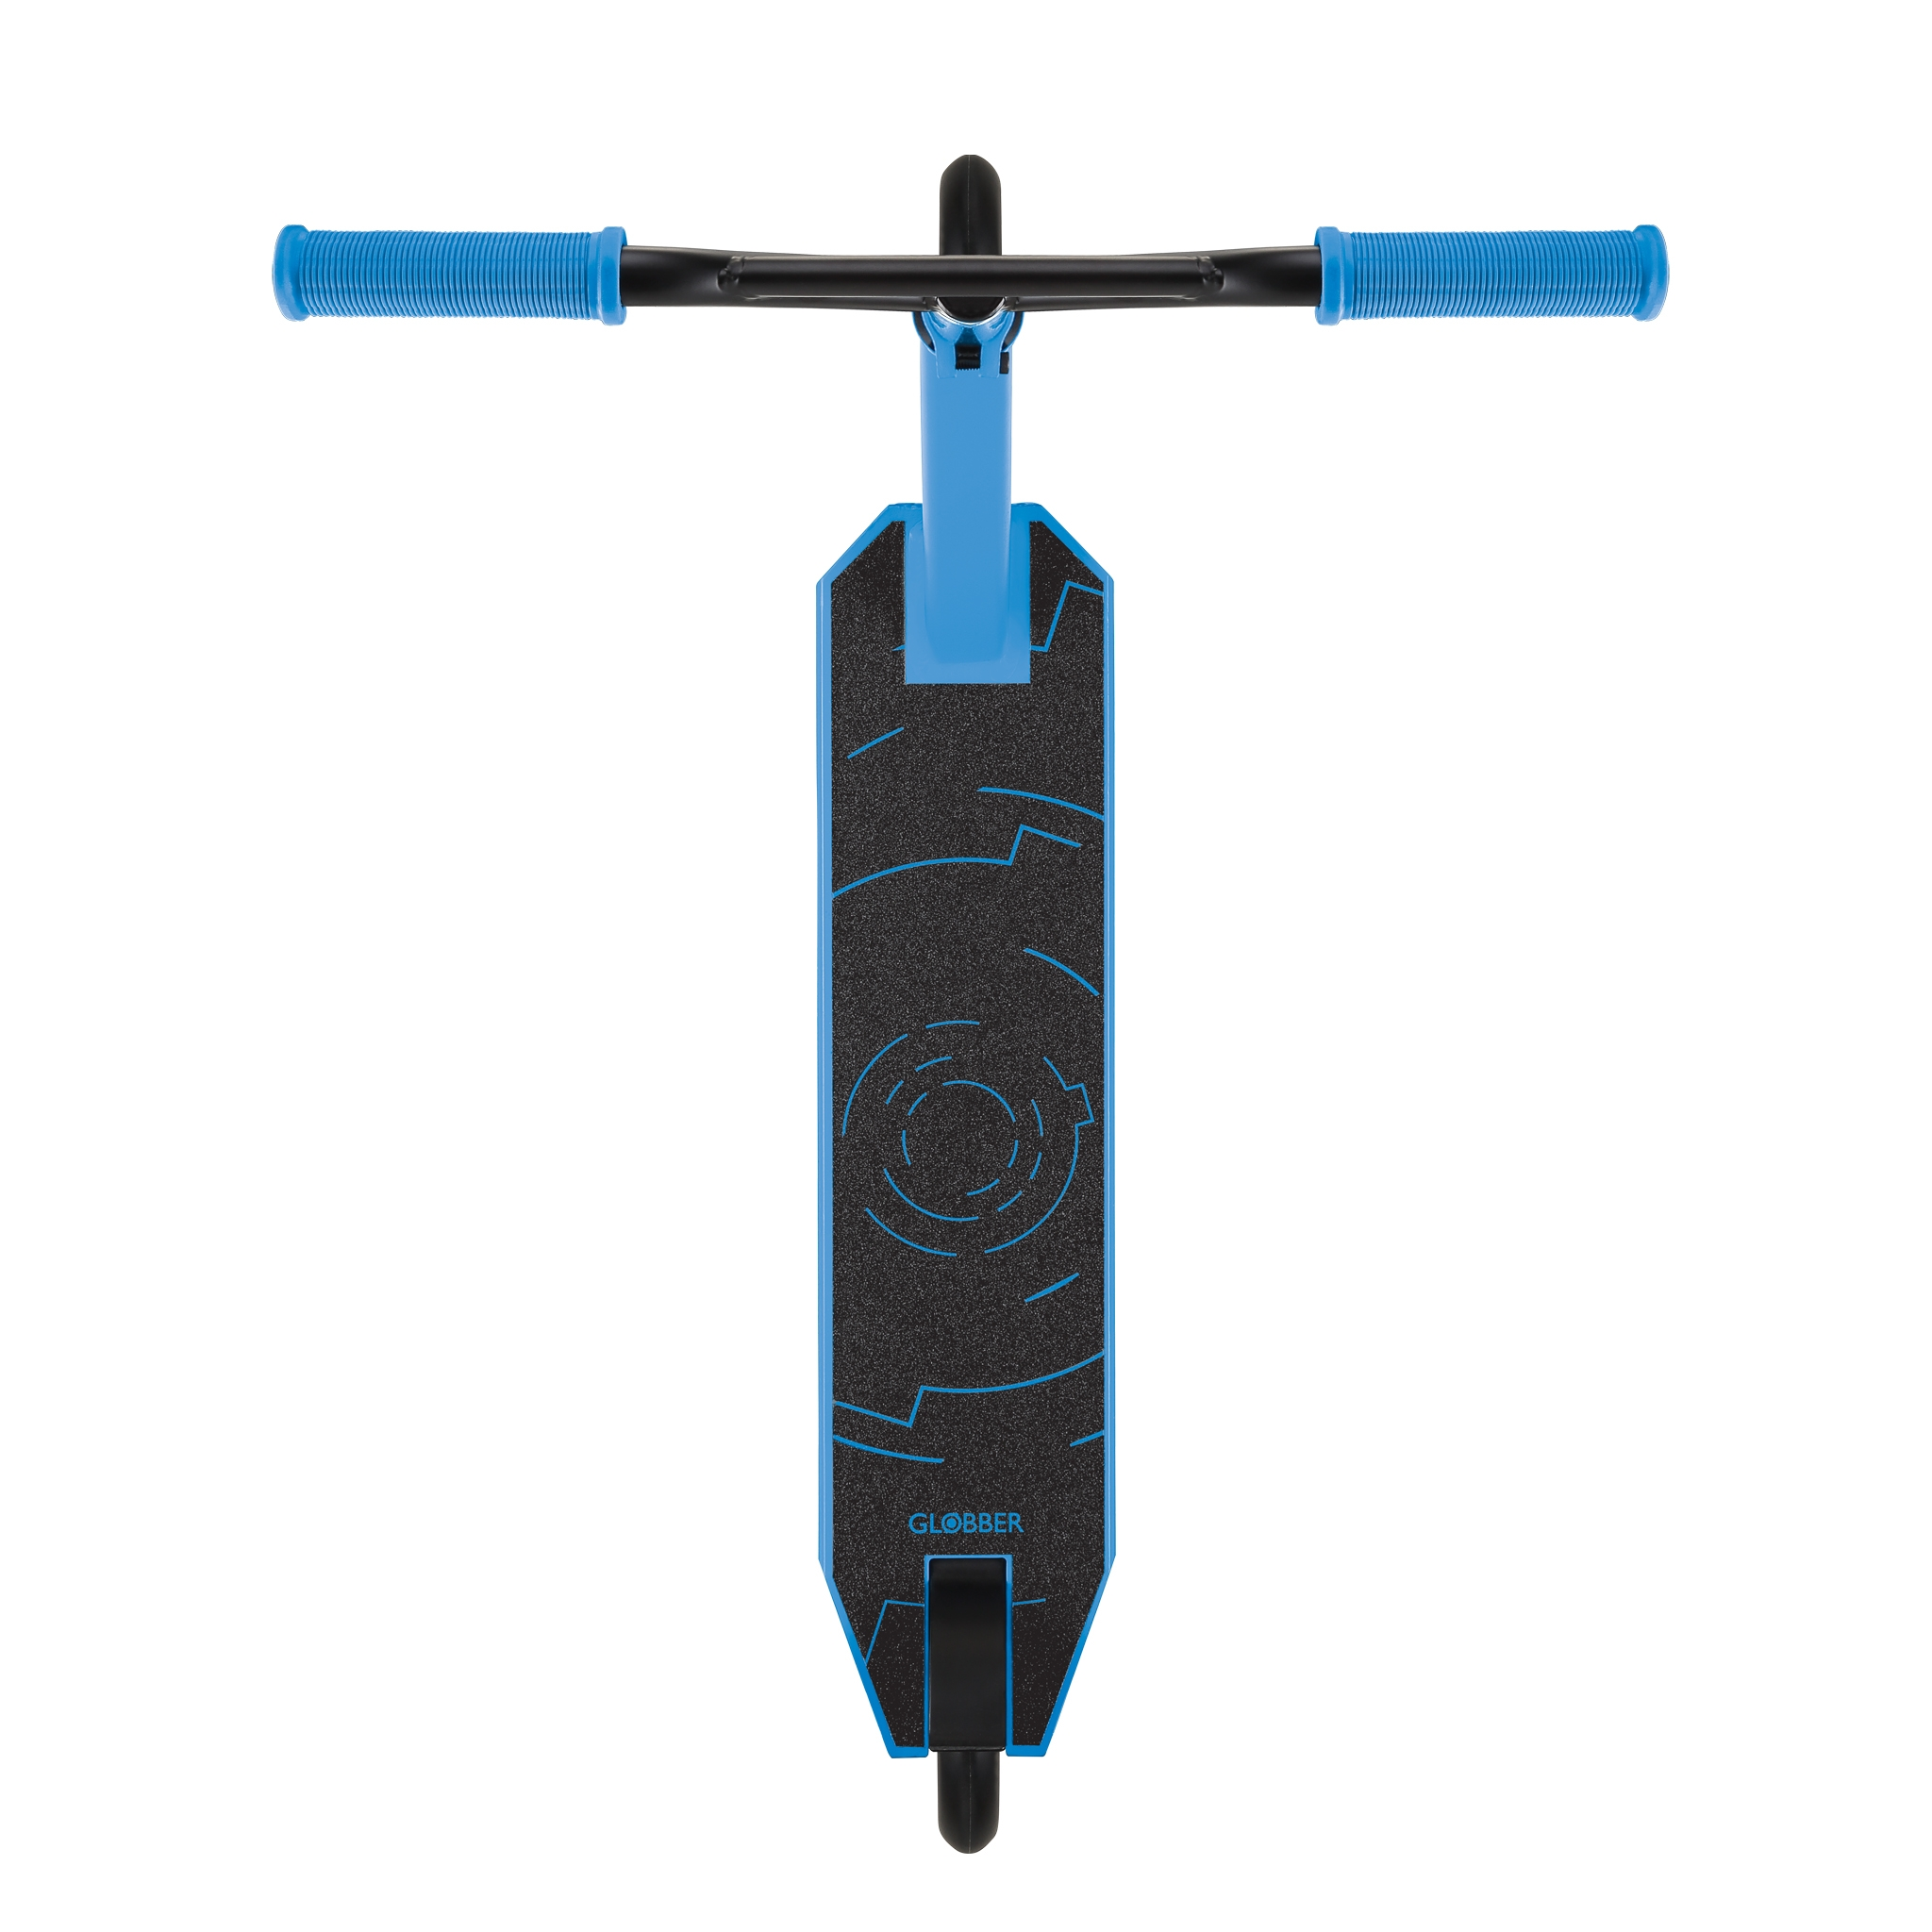 stunt scooter for kids and teens aged 8+ with pegs - Globber GS 540 1